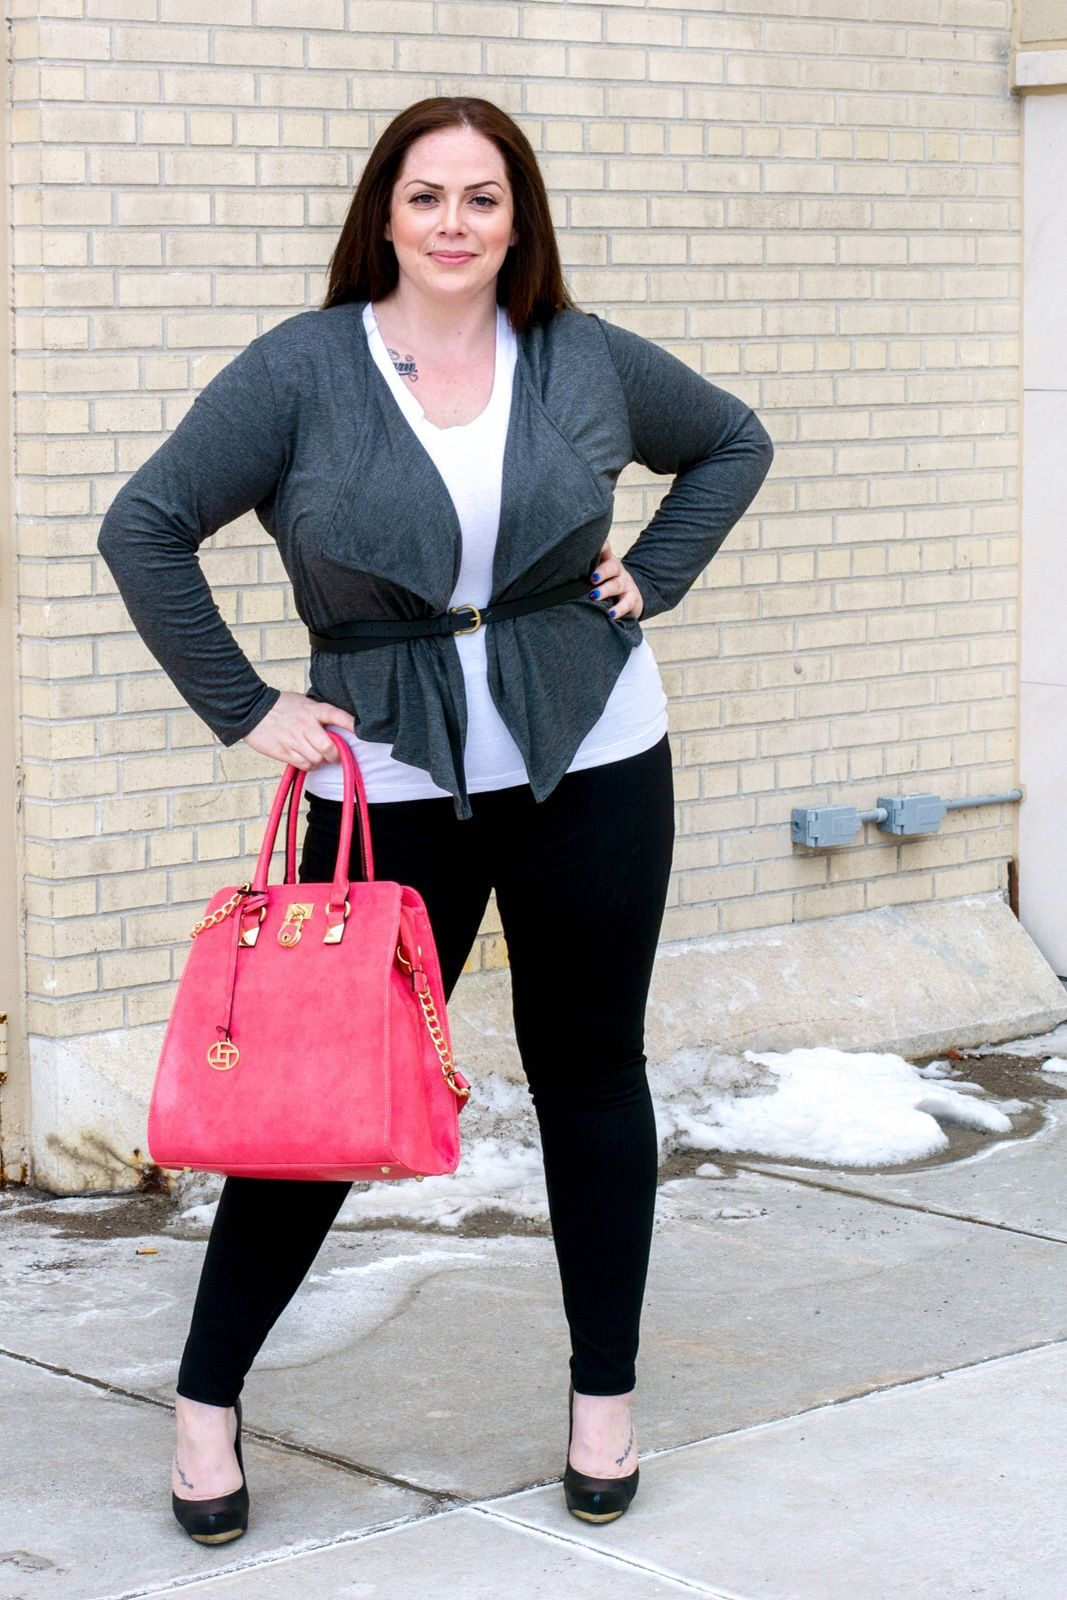 Plus size fashions for the fashion forward and trendy woman! More styles available here: voluptuousclothing.com